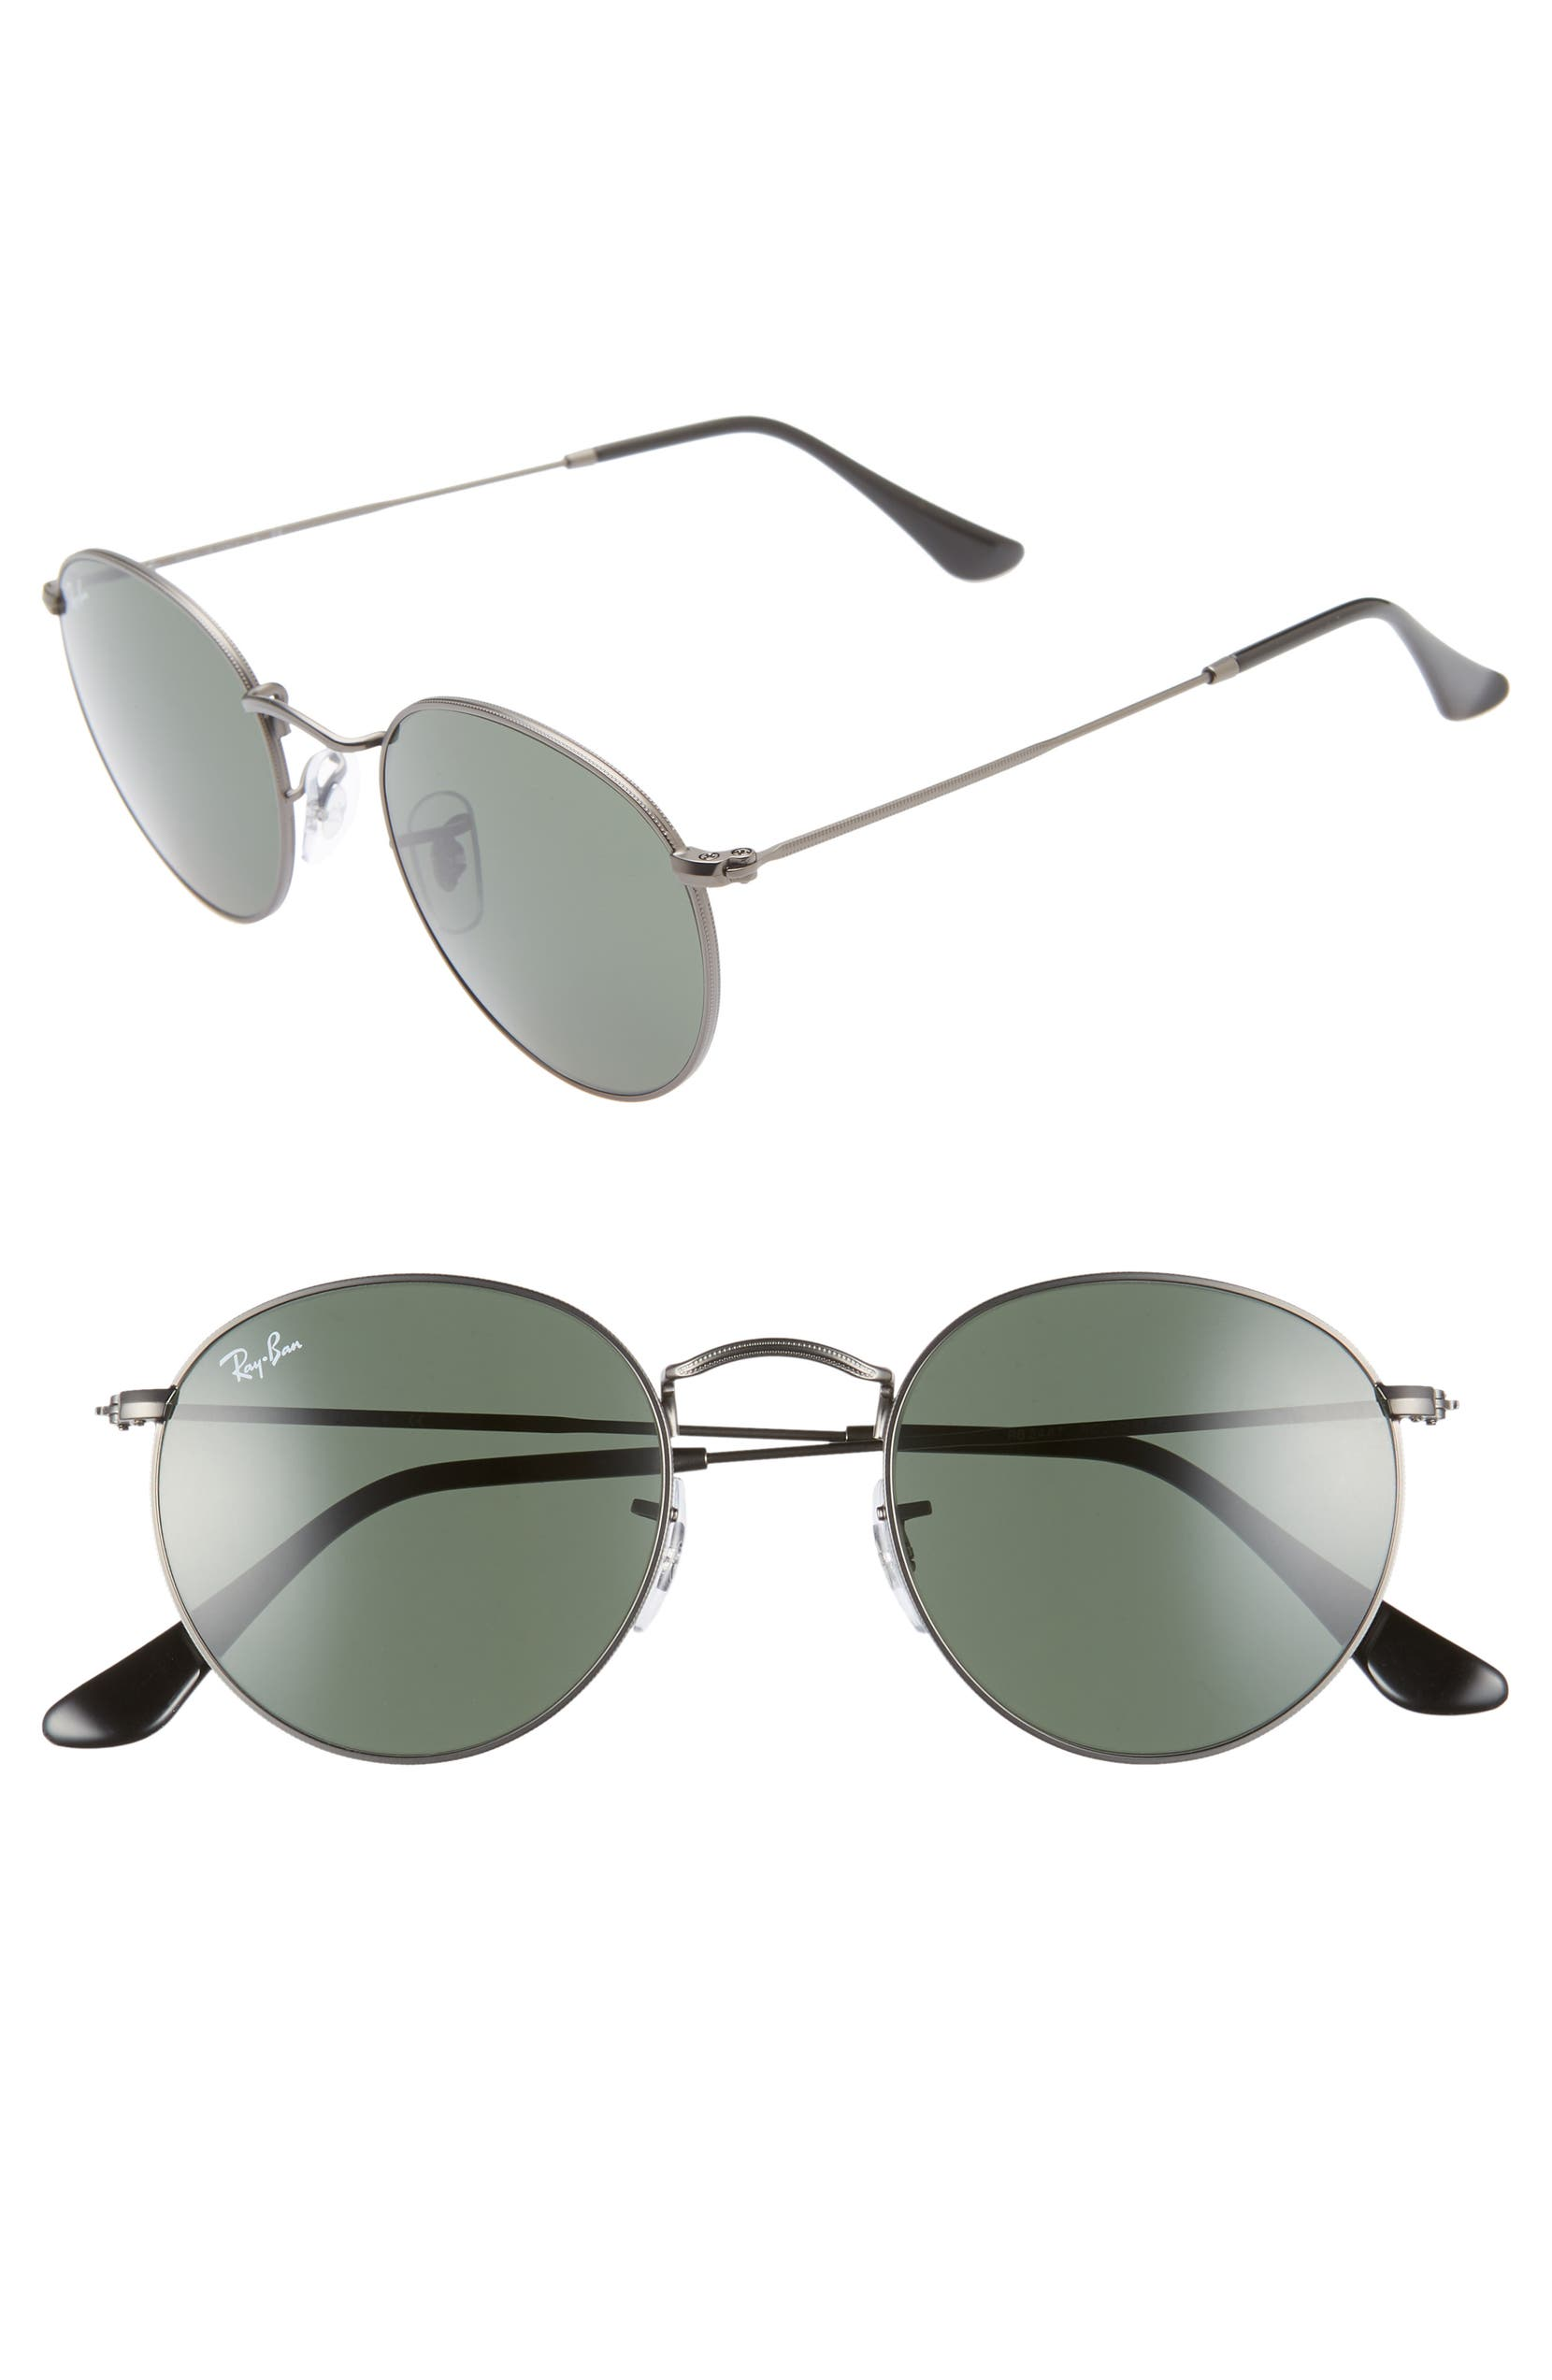 Ray-Ban Icons 50mm Round Metal Sunglasses  0142c5a9a